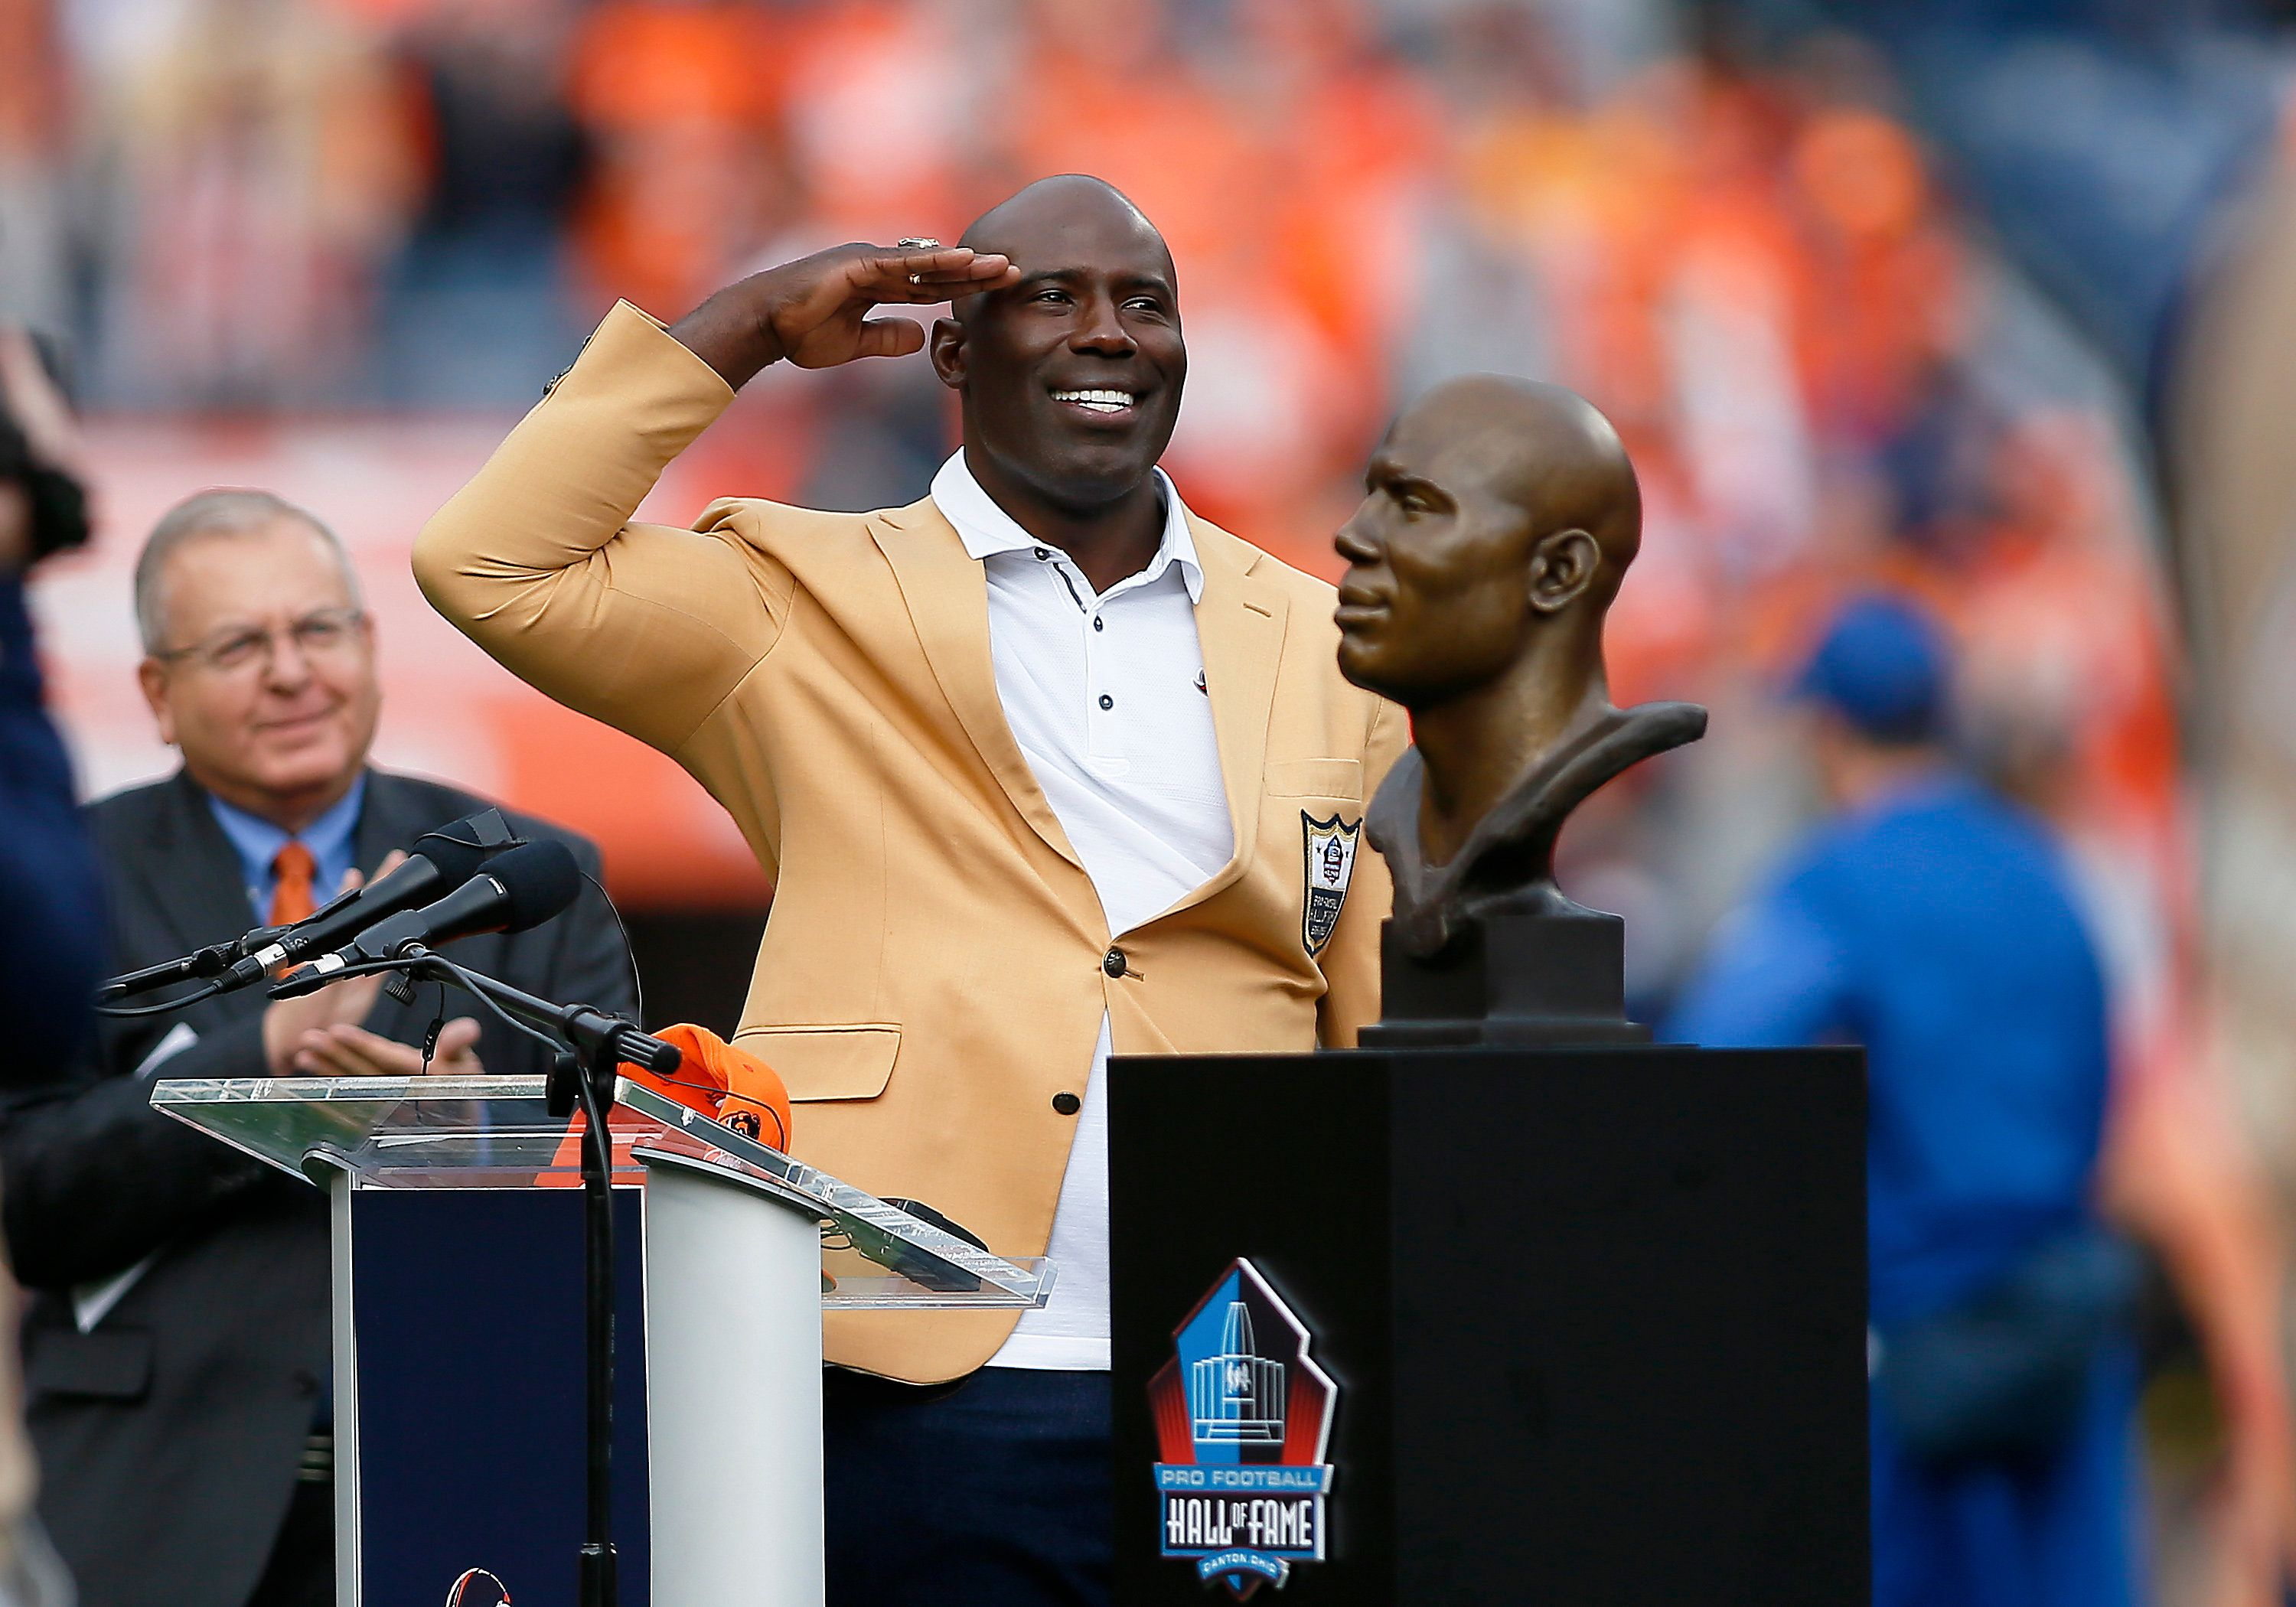 DENVER, CO - NOVEMBER 19: Terrell Davis salutes the Broncos fans after being honored with his Hall of Fame induction prior to a game between the Denver Broncos and the visiting Cincinnati Bengals on November 19, 2017 at Sports Authority Field in Denver, CO.(Photo by Russell Lansford/Icon Sportswire via Getty Images)